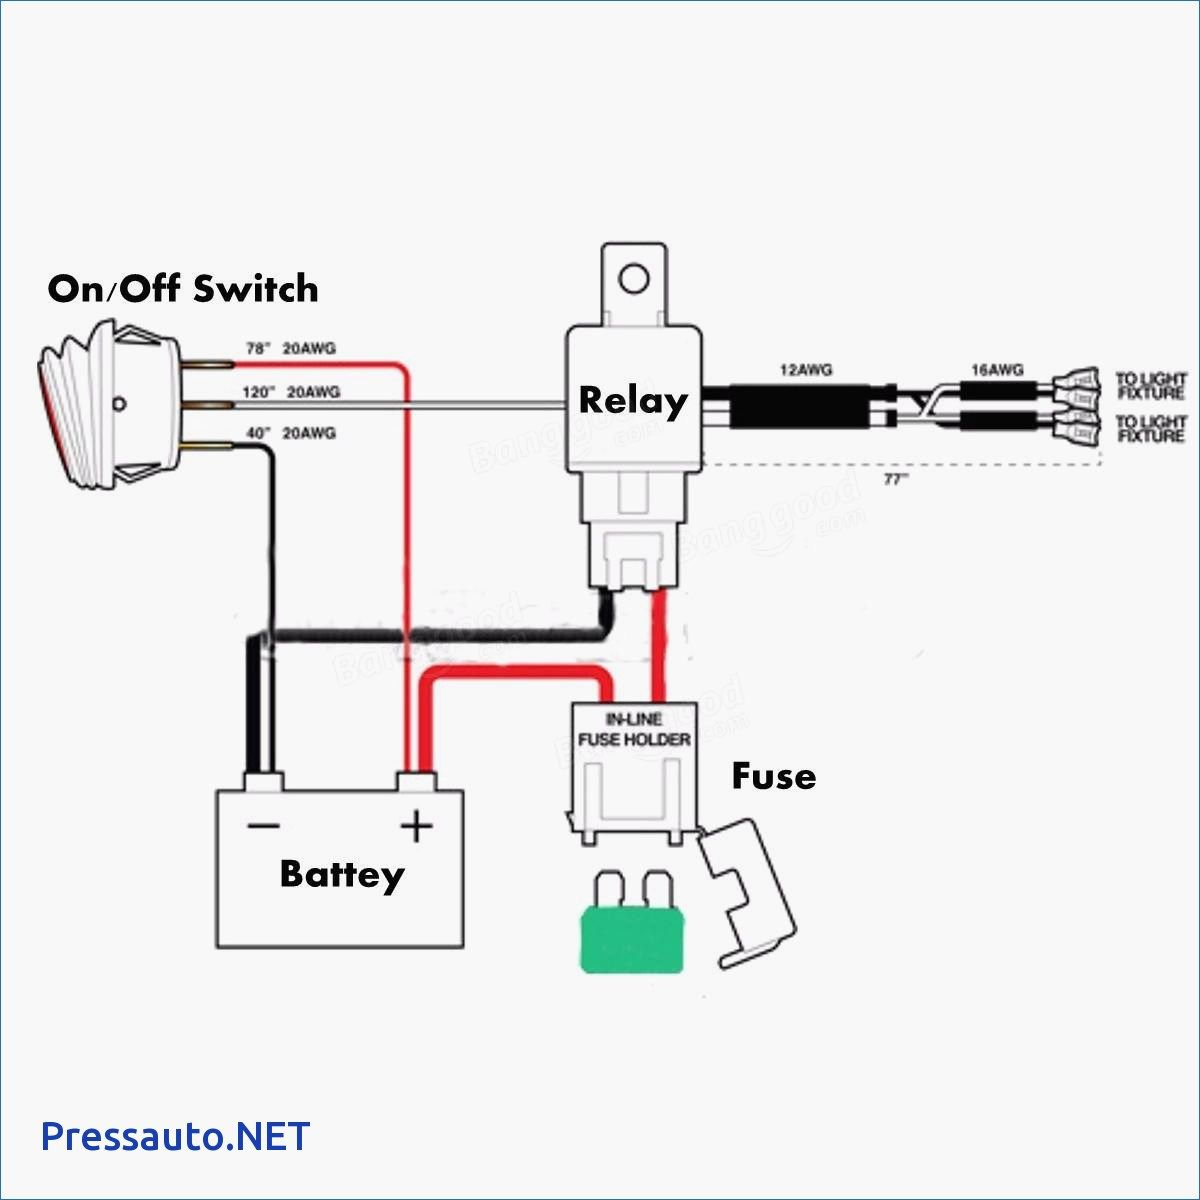 Light Switch Relay Wiring - Service Repair Manual on